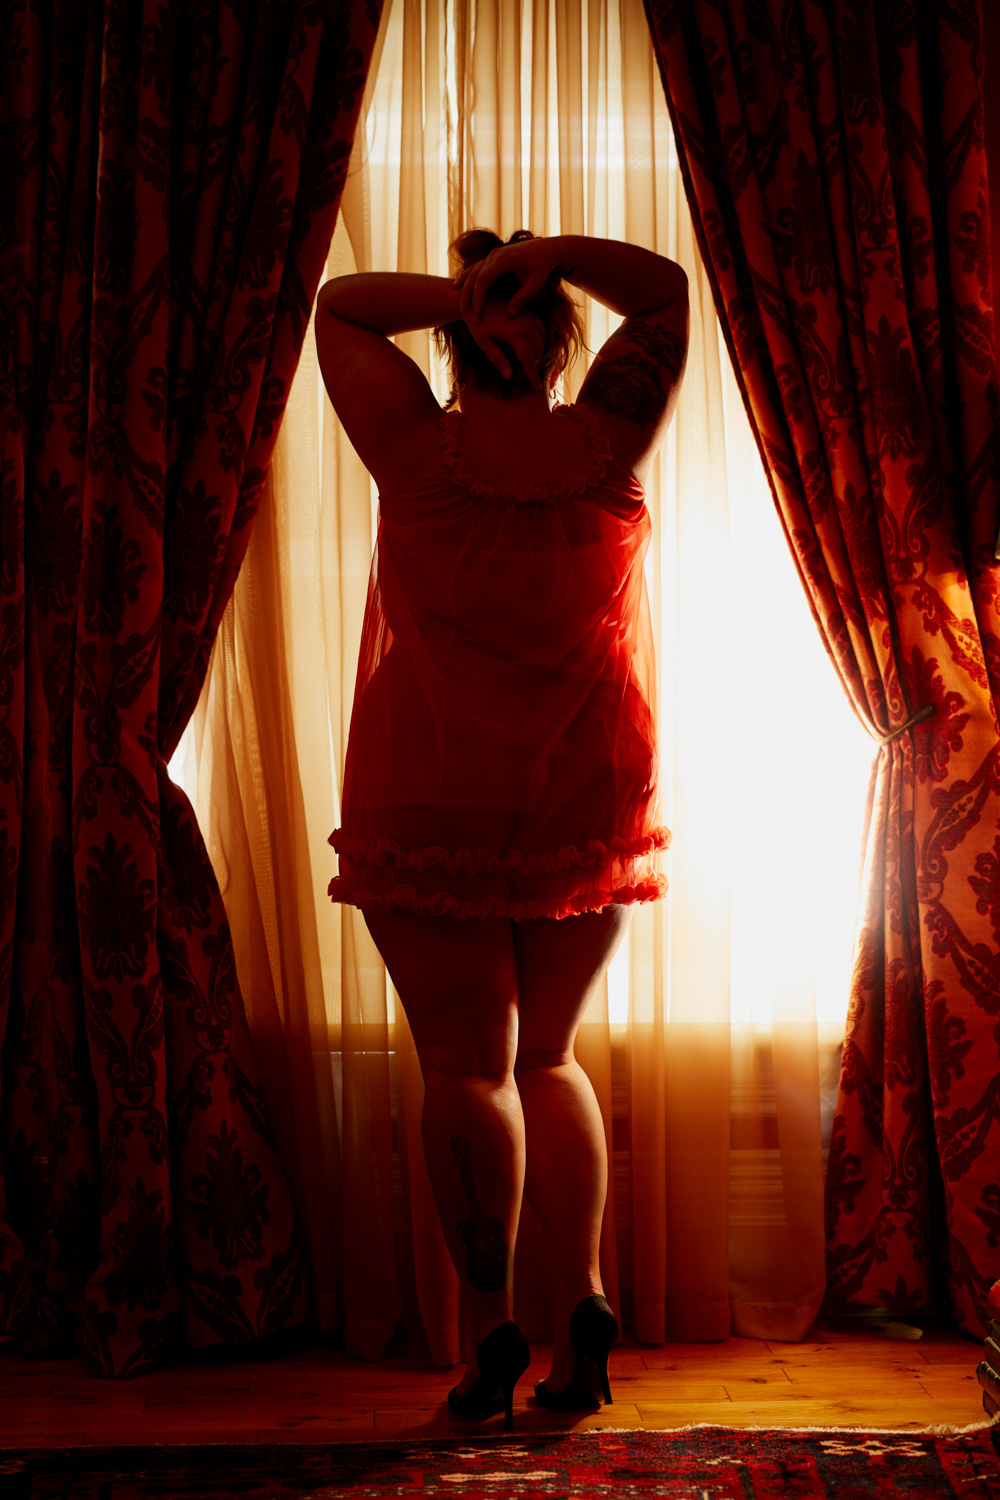 21-best-toronto-boudoir-photographer-unabashed-beauty-classy-hotel-glamourous-barrie-photography-sexy-inimate-lifestyle-photos-red-robe-see-through-nude-naked-bed-lingerie-stockings-garter-belt-thong-pose-pictures-beautiful-unabashed-beauty-private.jpg